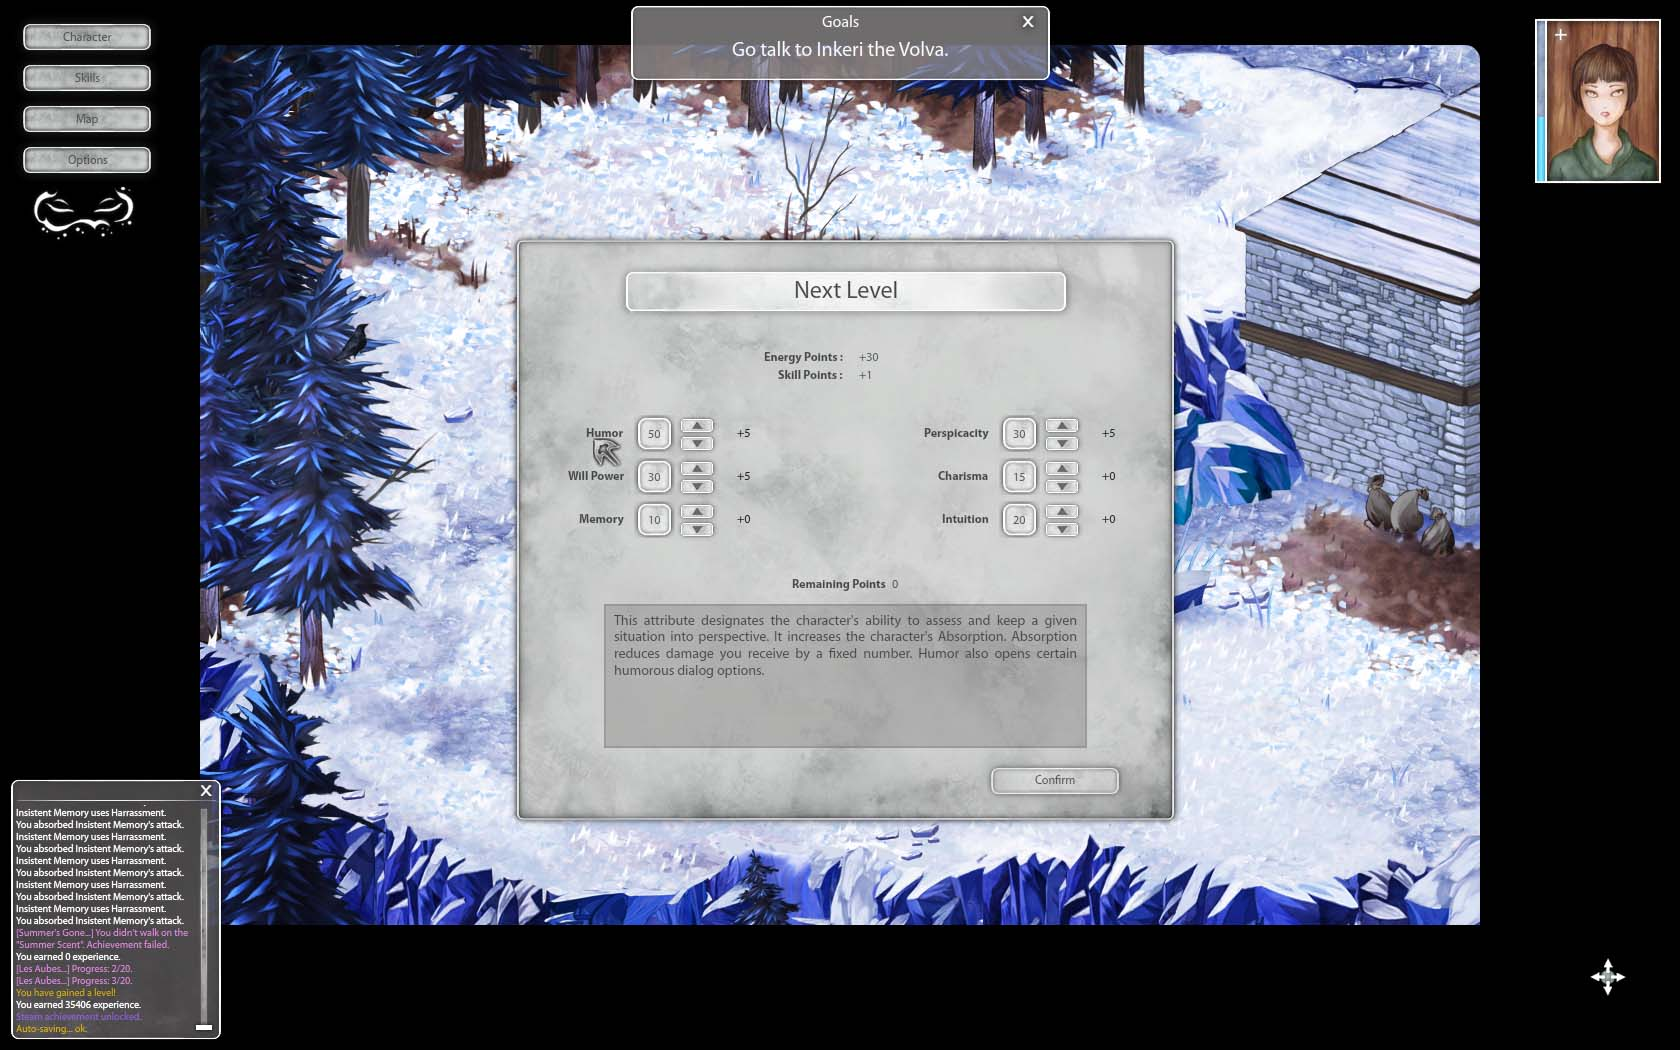 Winter Voices Complete Pack (Steam Key, Region Free)